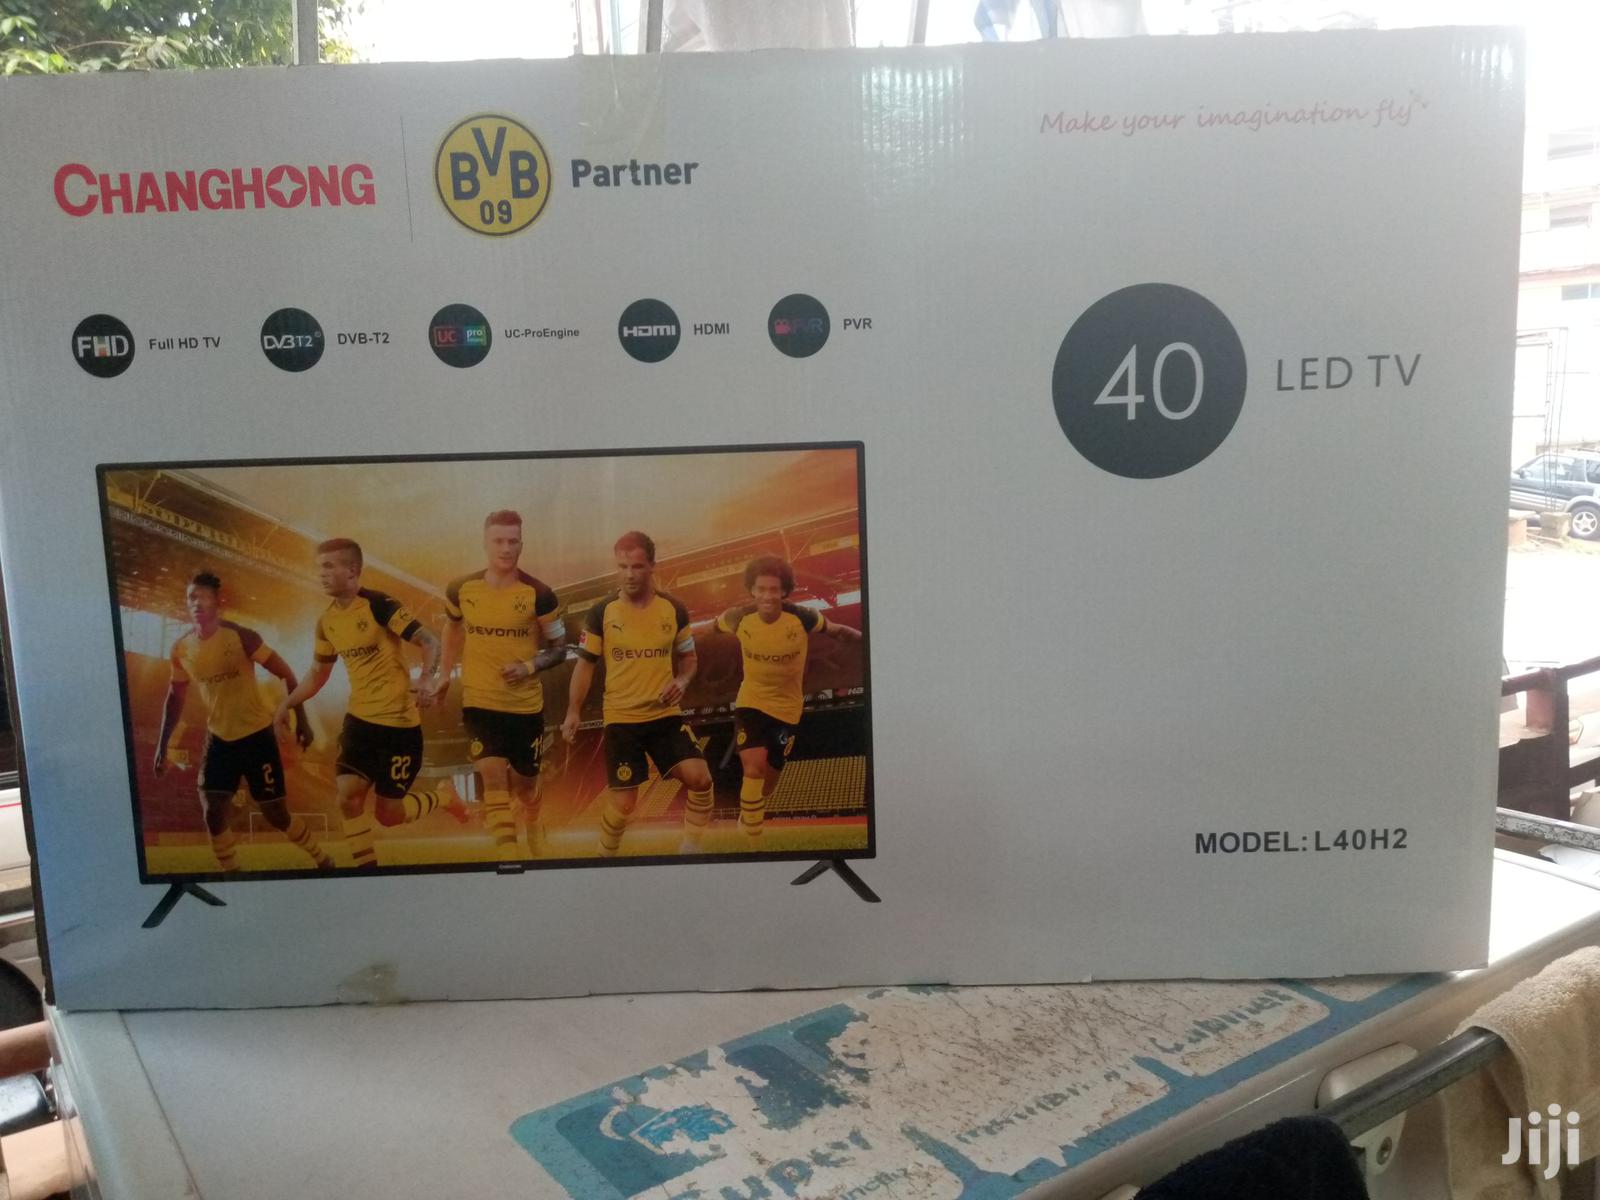 Changhong Digital Led Tv 40 Inches